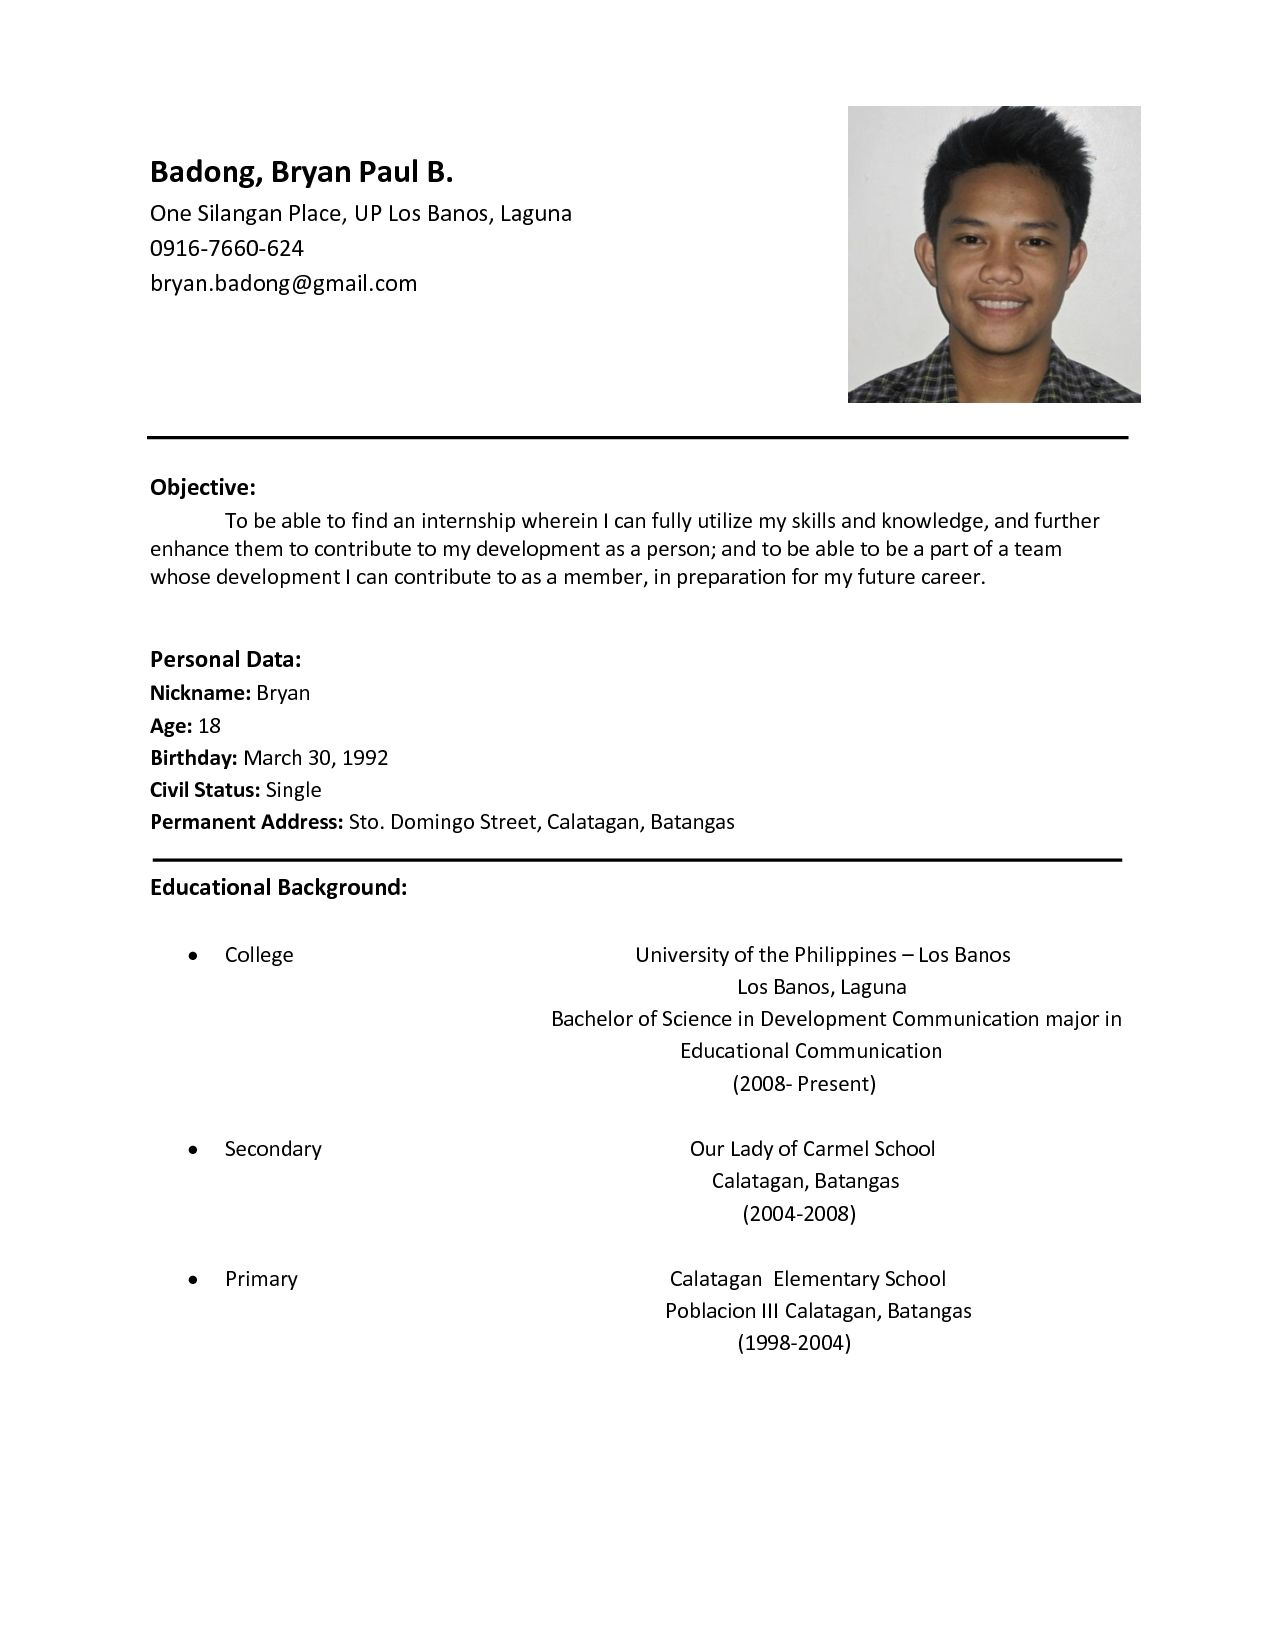 Resume Format Examples For Job | Resume writing | Pinterest | Resume ...